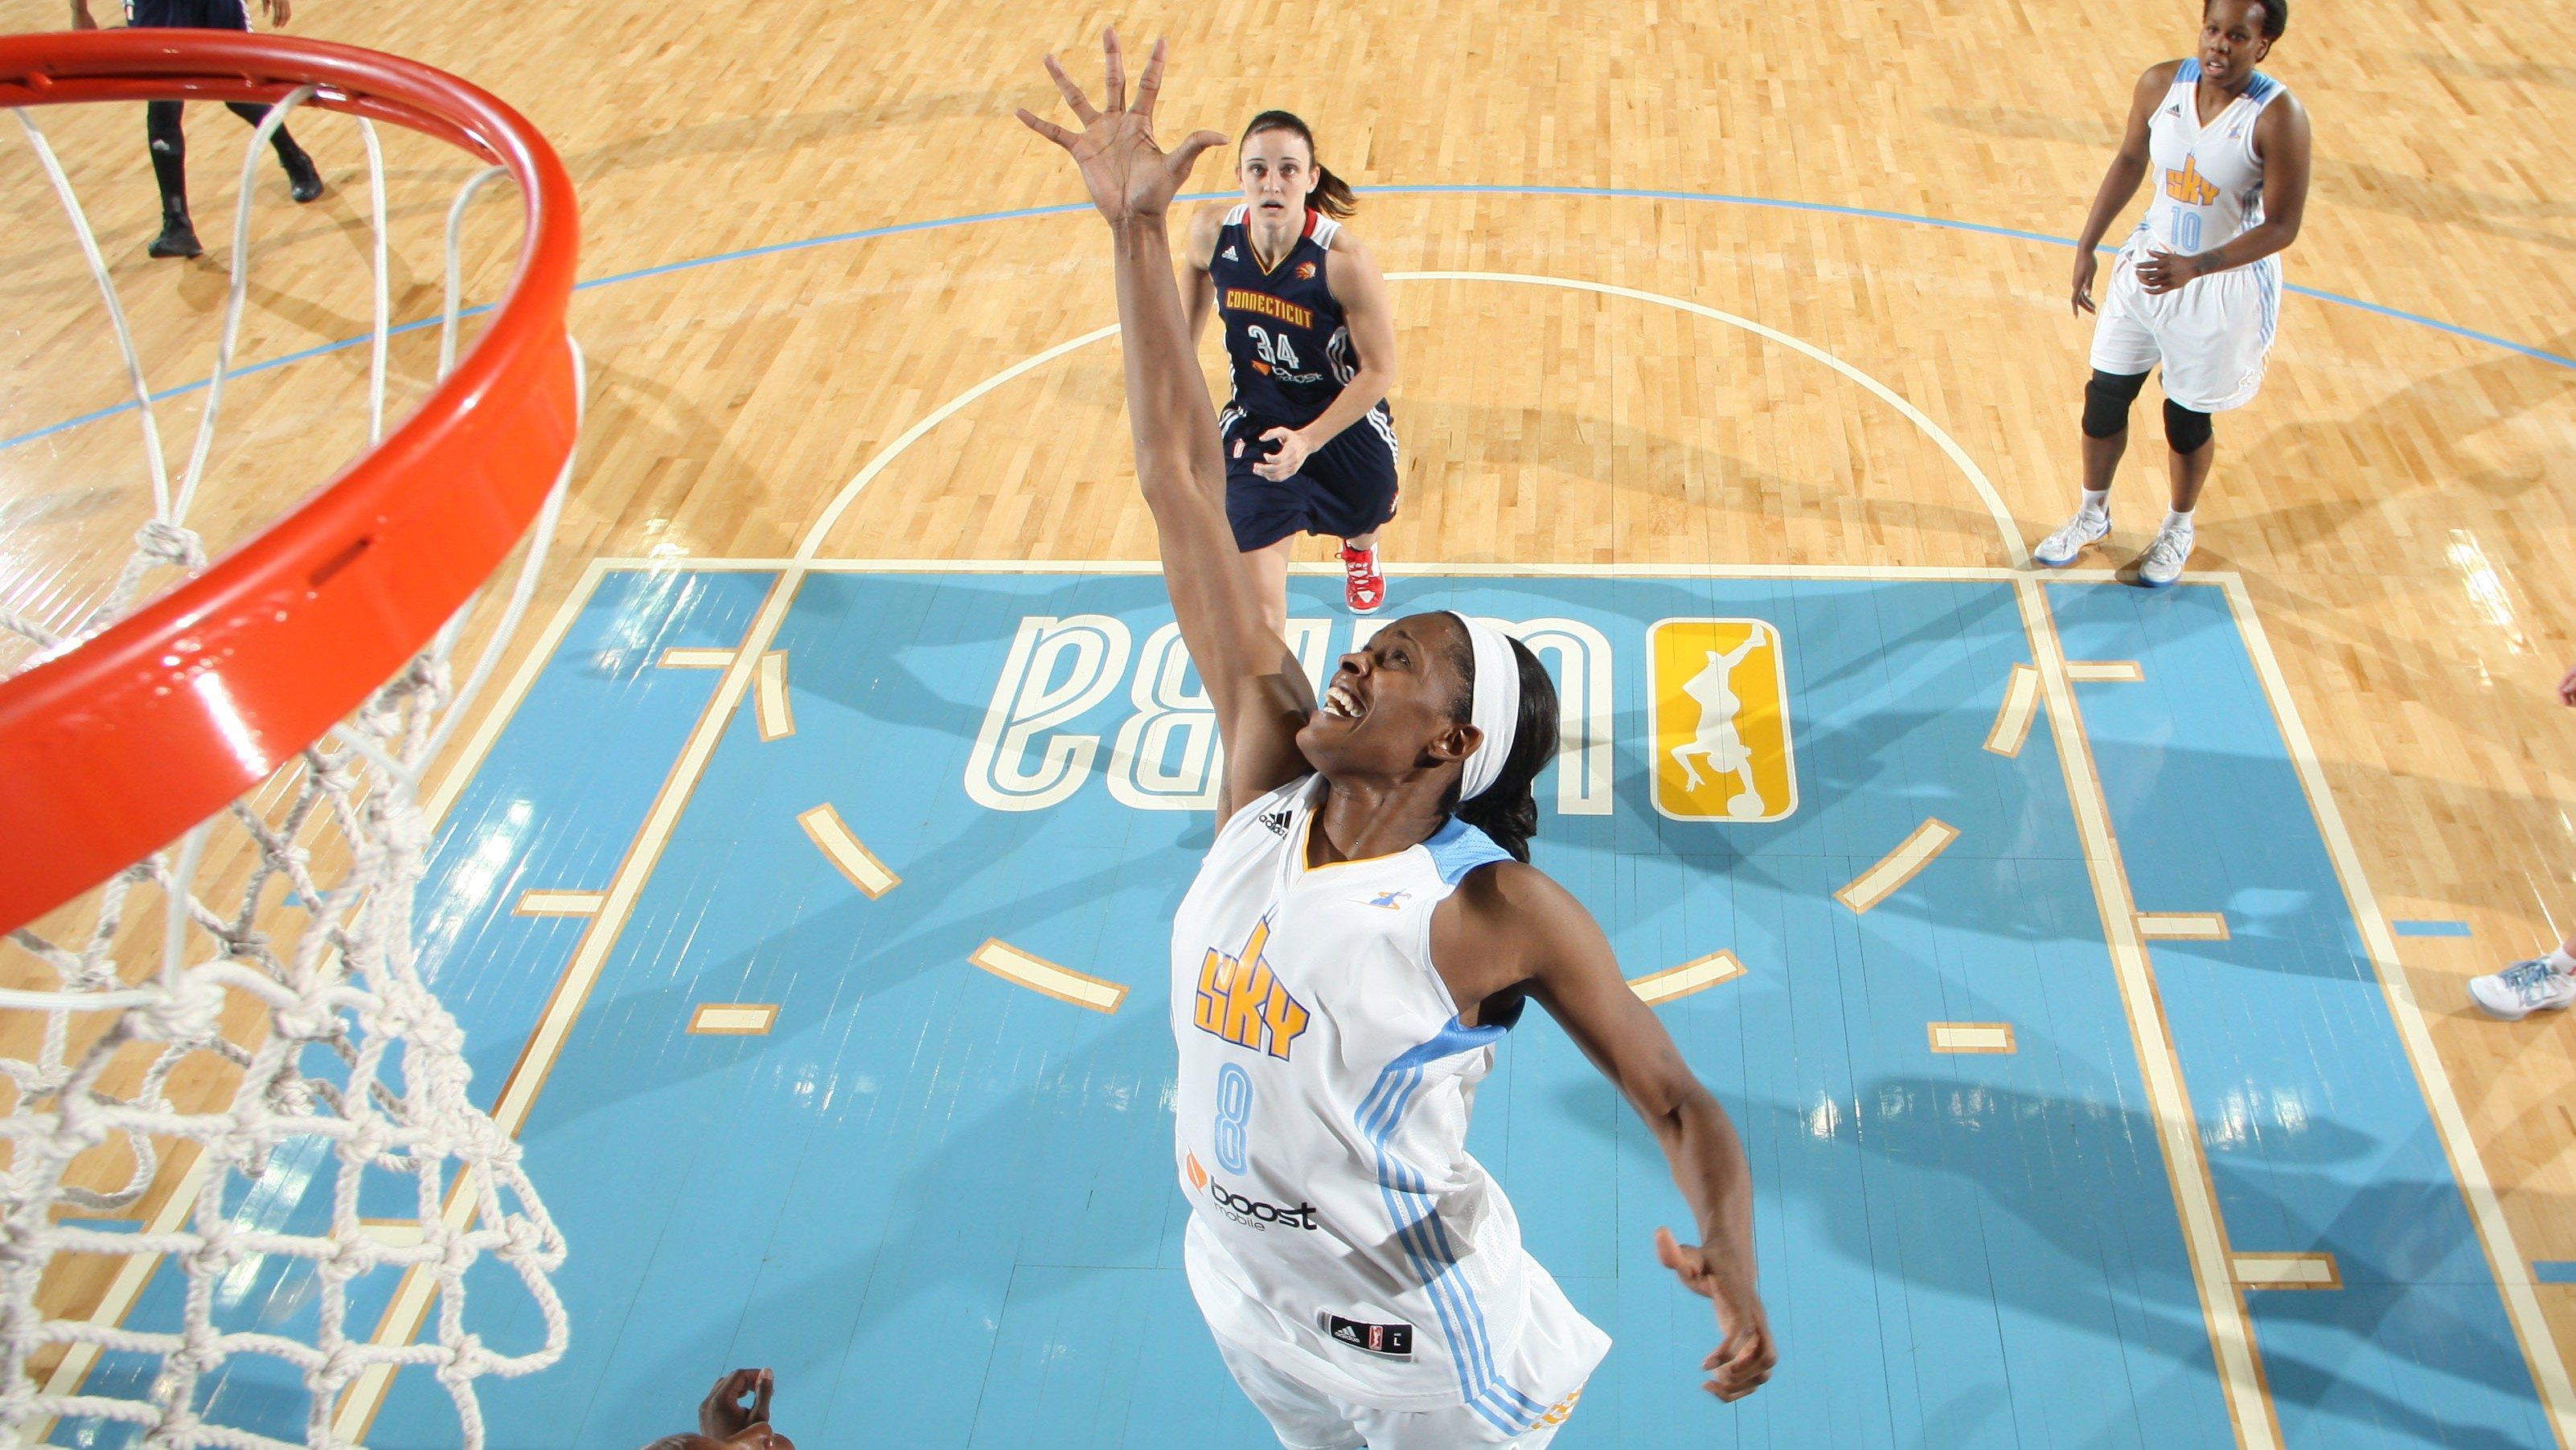 Dishin & Swishin 8/29/13 Podcast: The WNBA Eastern conference – Swin Cash & Chicago are #SkyHigh & Ros Gold-Onwude discusses the final playoff spots